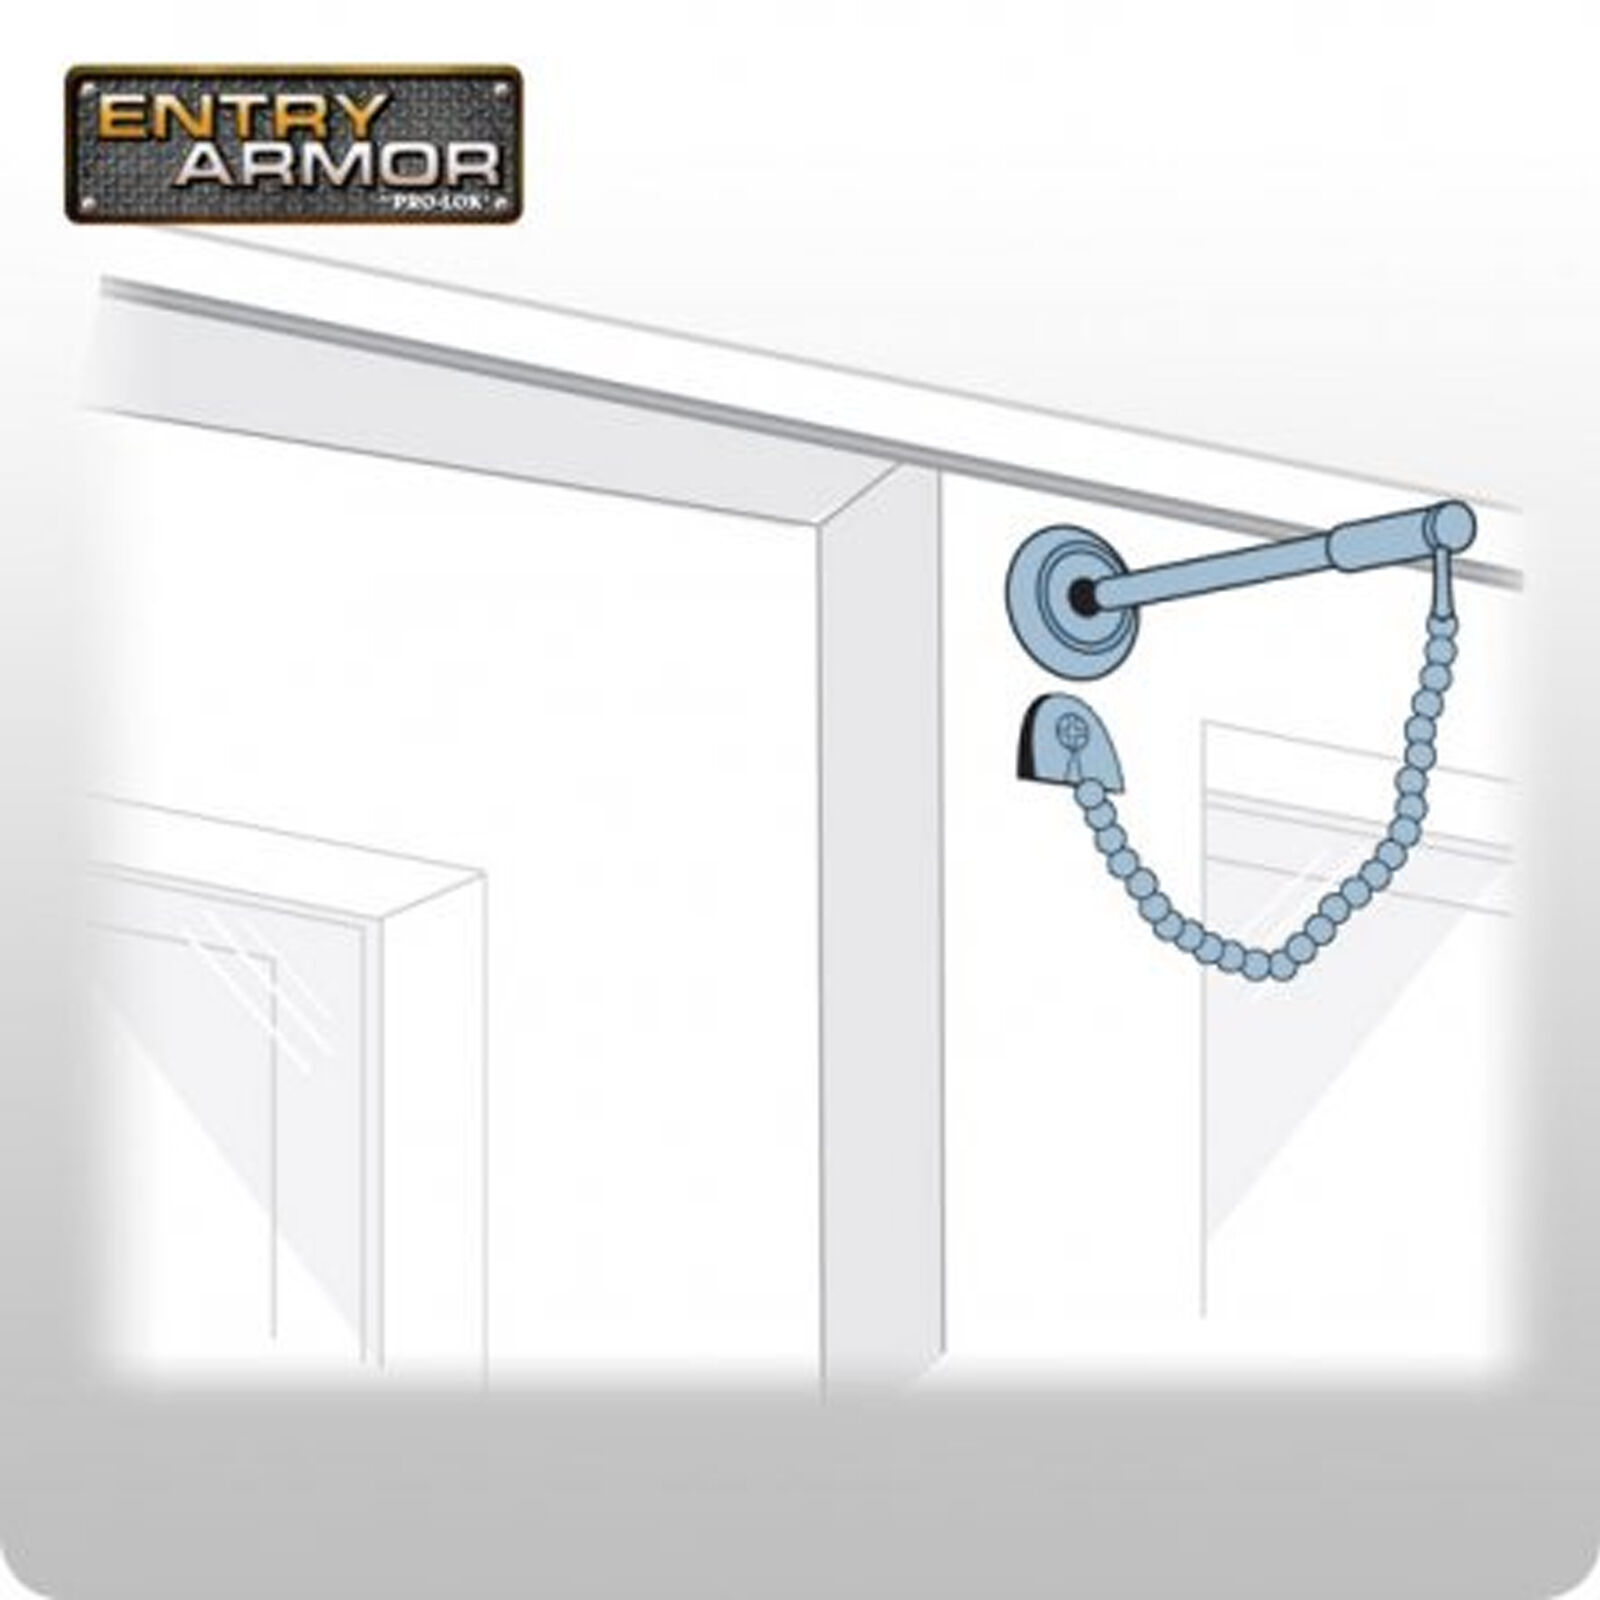 Patio Door Pin Lock Sliding Door Window Lock Made By Entry Armor